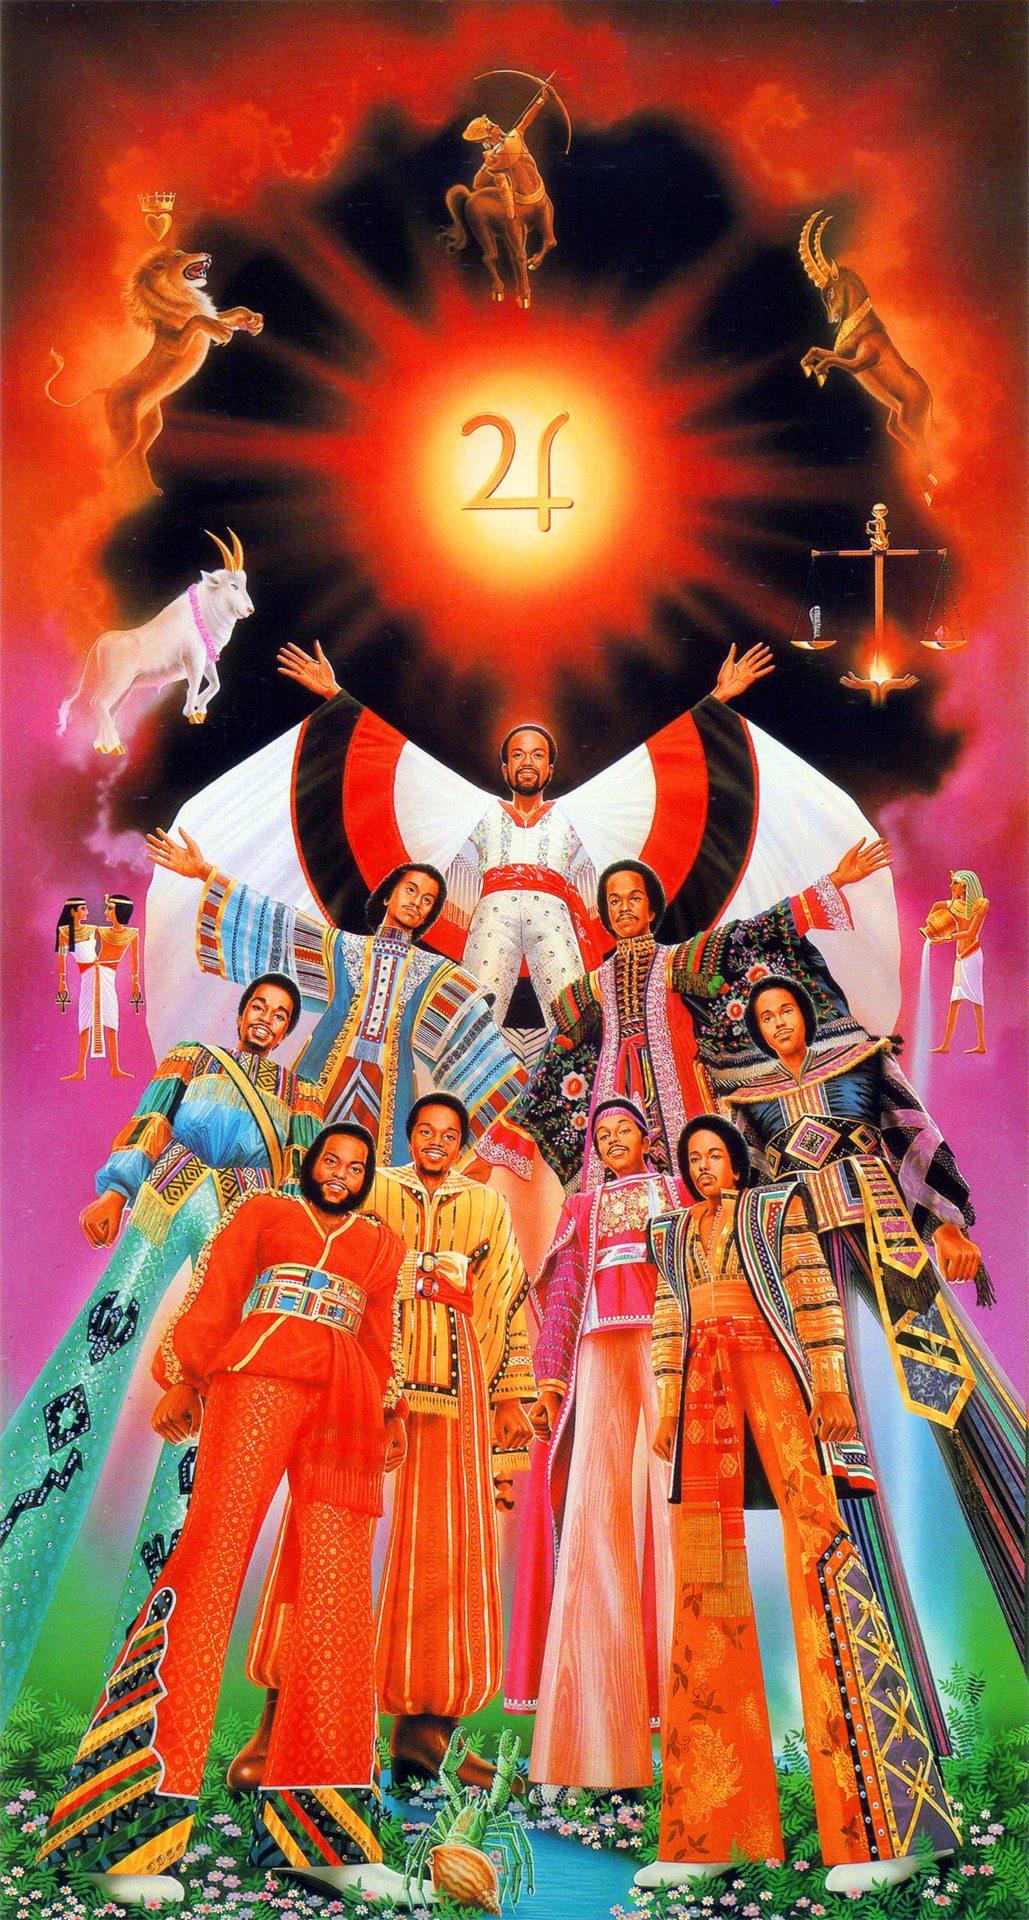 Album art for Earth, Wind, and Fire's 1979 album I Am, by Shusei Nagaoka.   Lots more spaced out '70s/'80s artwork here.